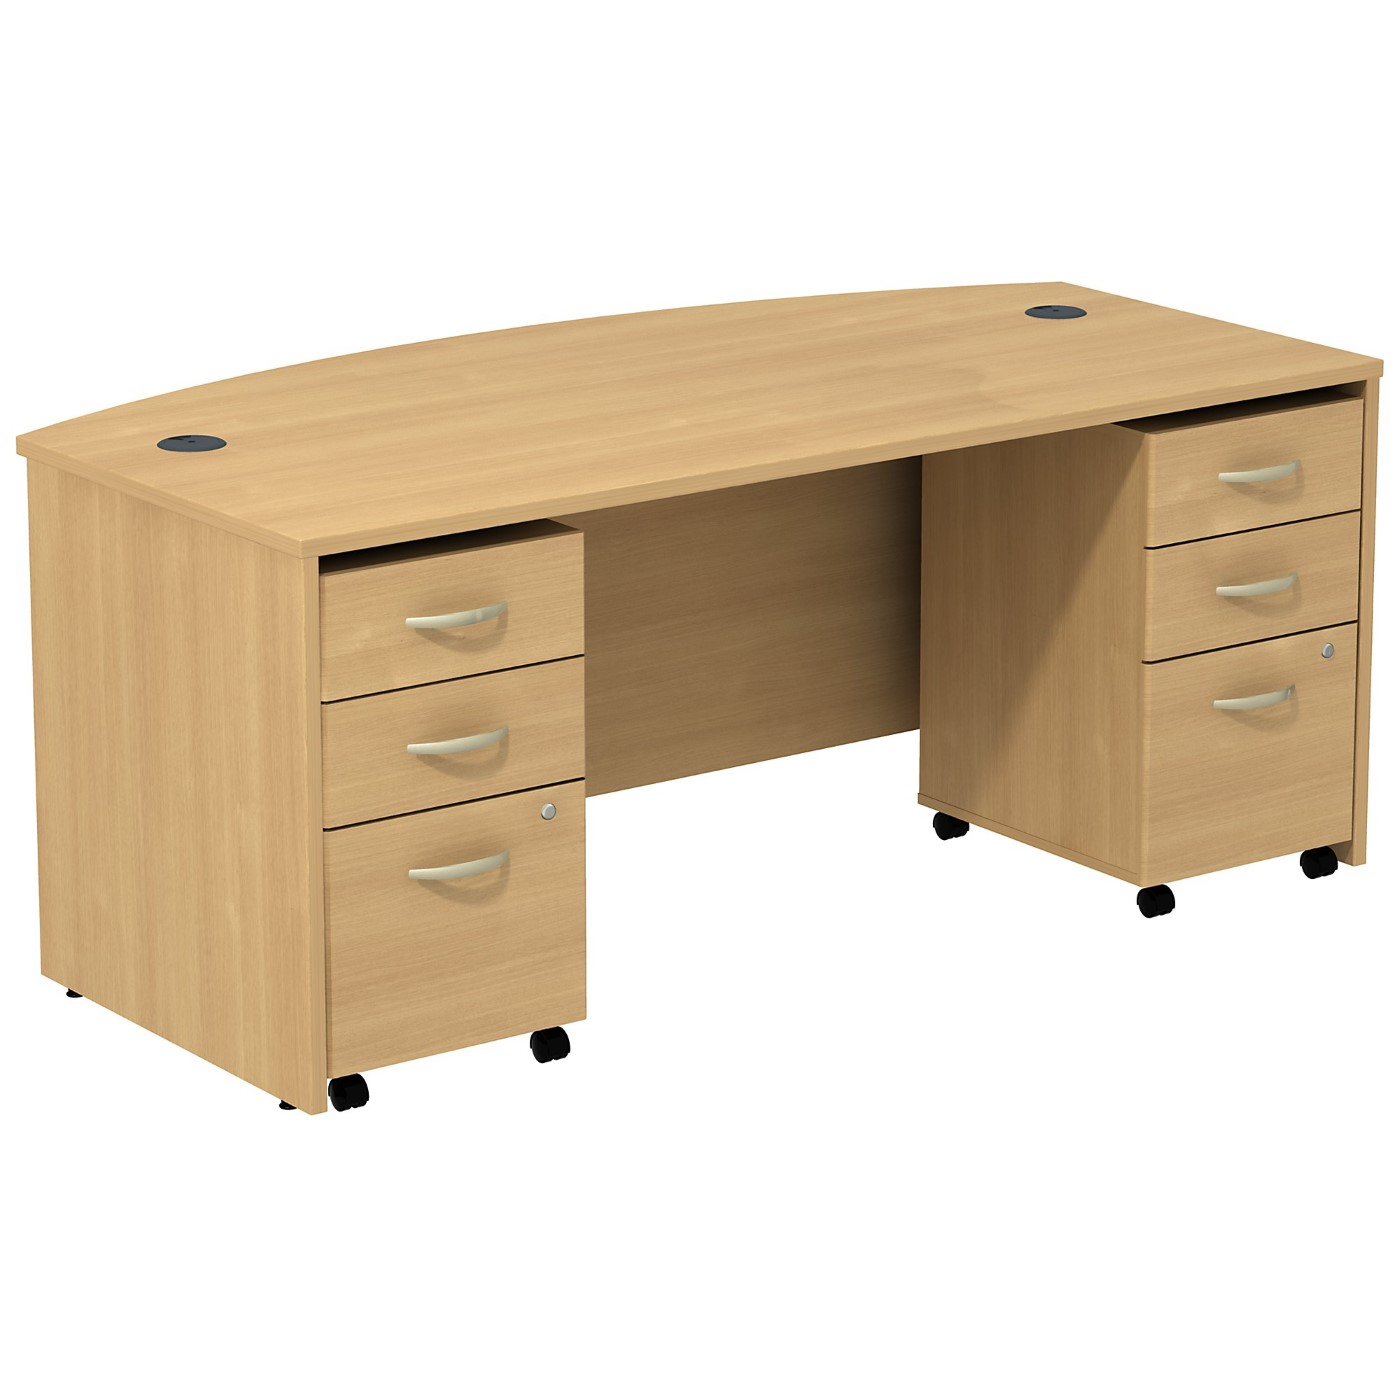 BUSH BUSINESS FURNITURE SERIES C BOW FRONT DESK WITH (2) 3 DRAWER MOBILE PEDESTALS. FREE SHIPPING SALE DEDUCT 10% MORE ENTER '10percent' IN COUPON CODE BOX WHILE CHECKING OUT.